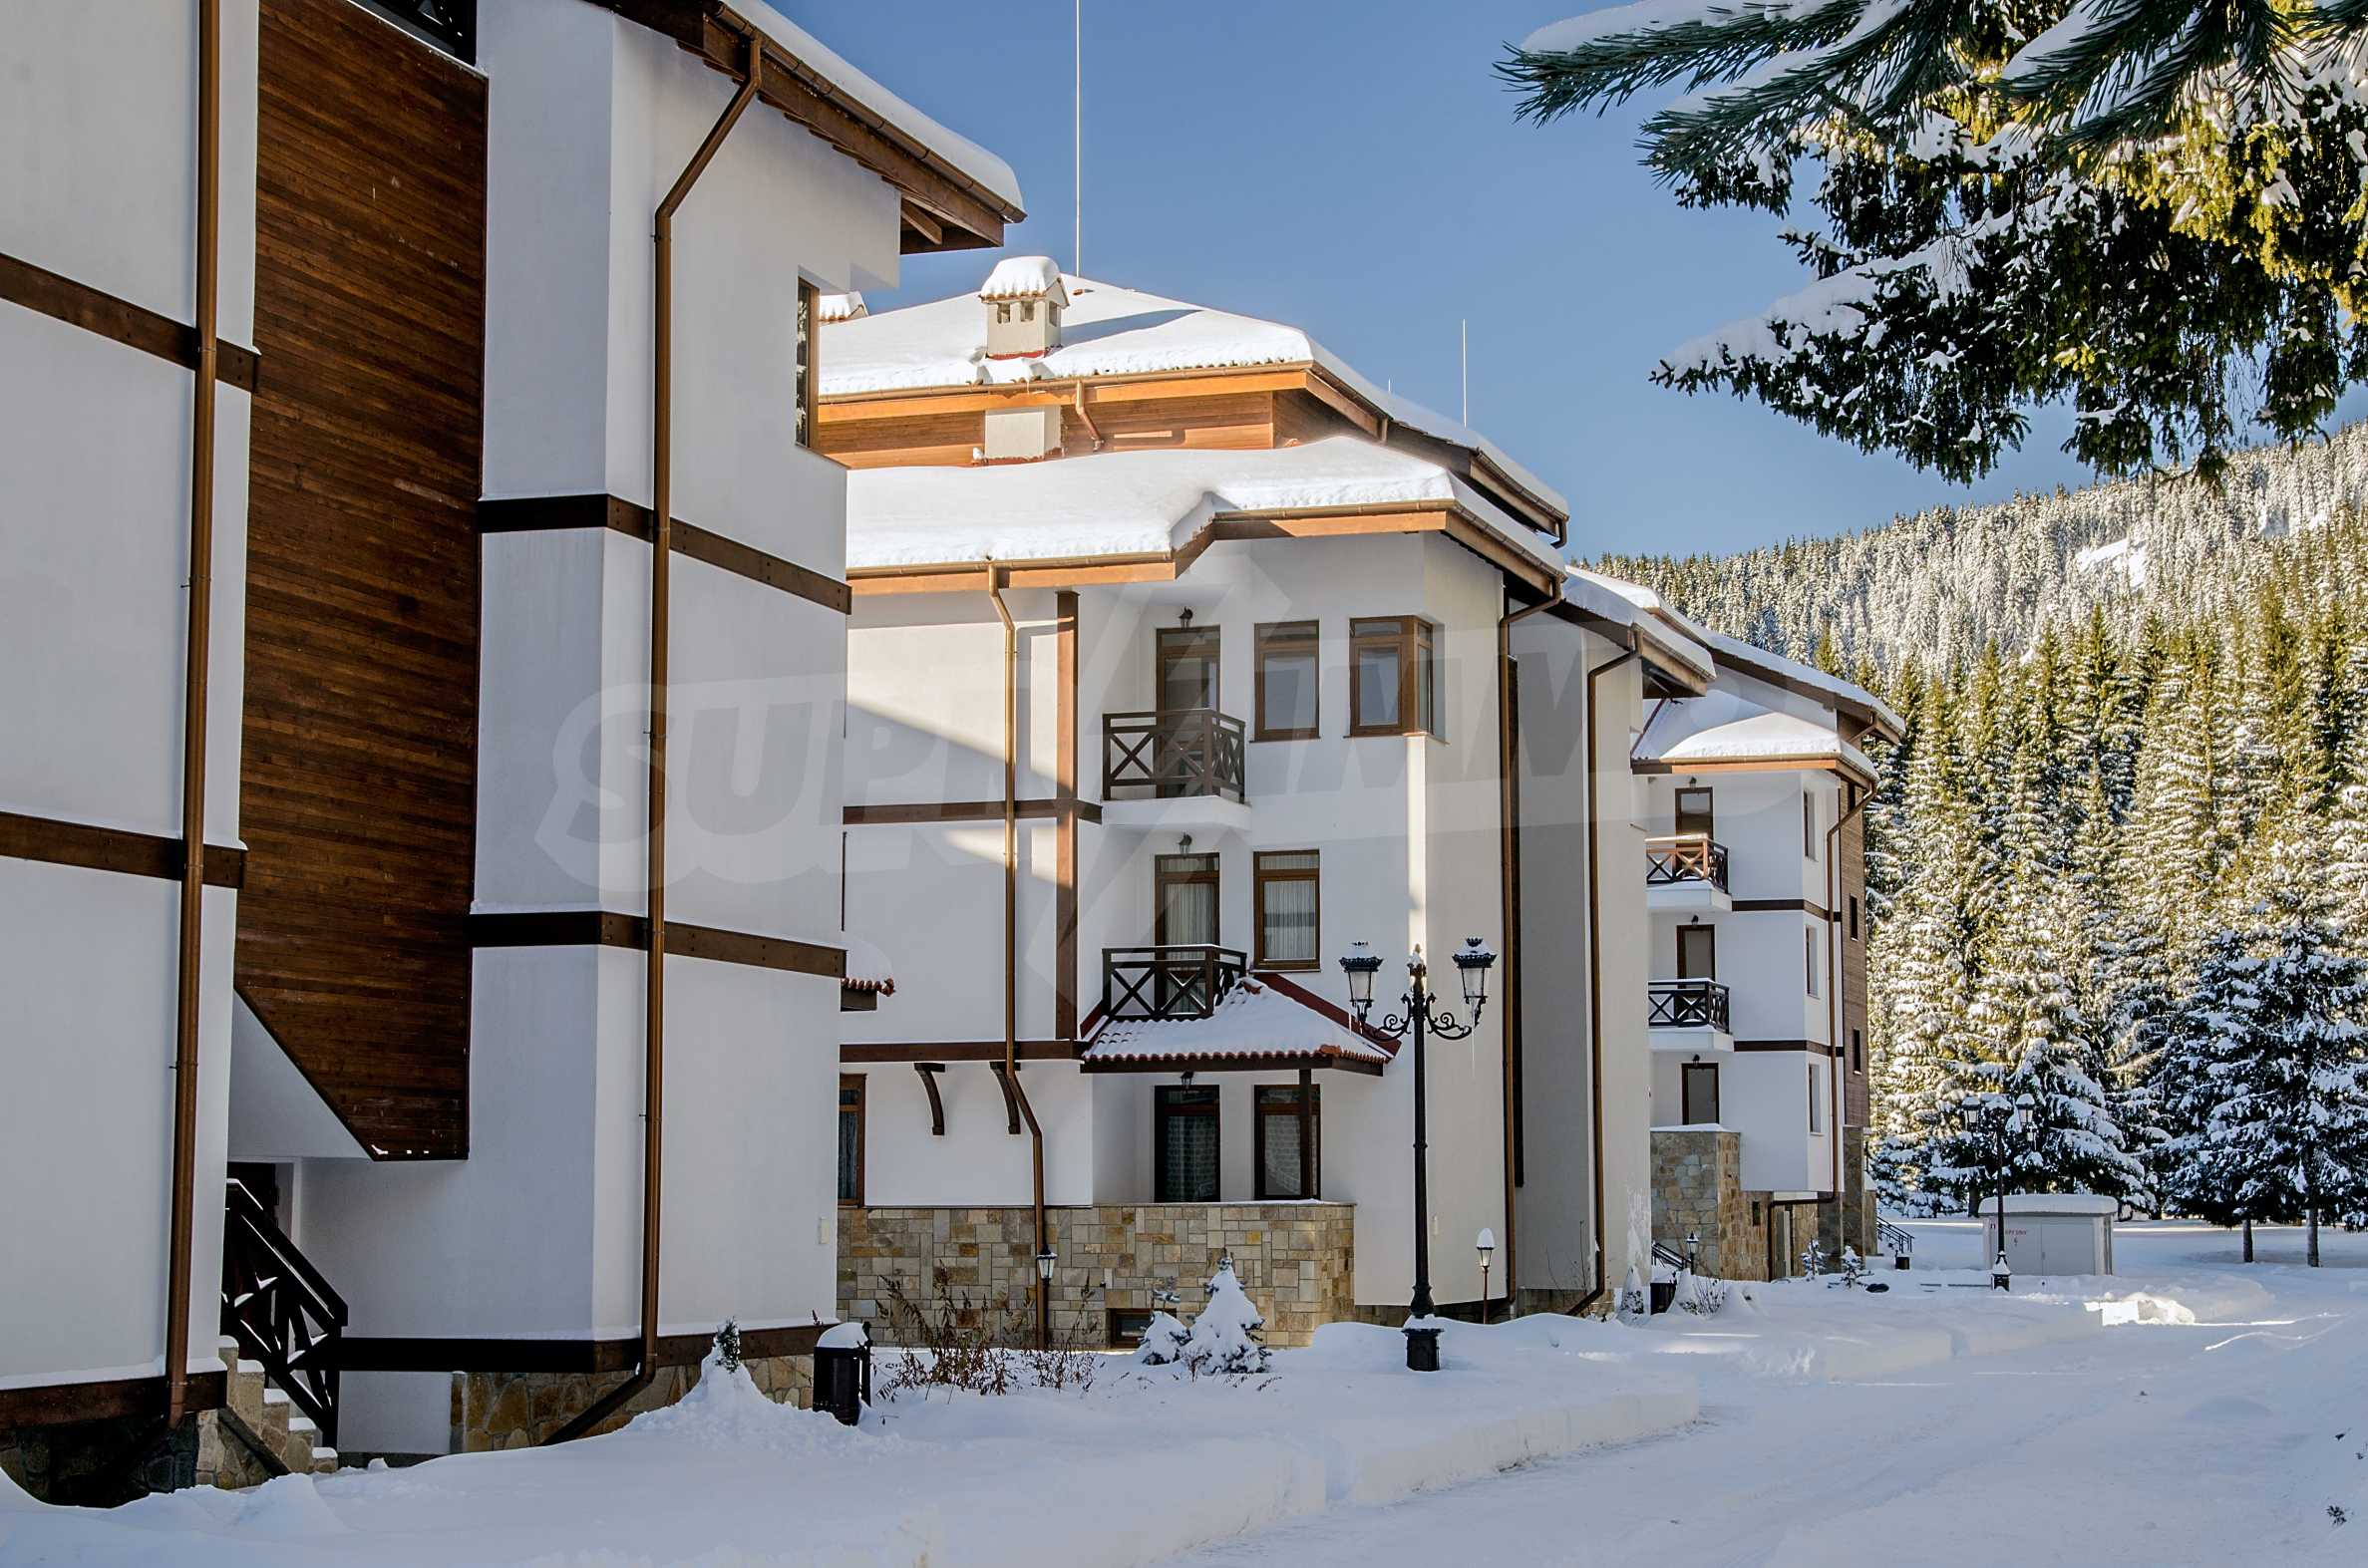 1-bedroom apartment in Pamporovo 15